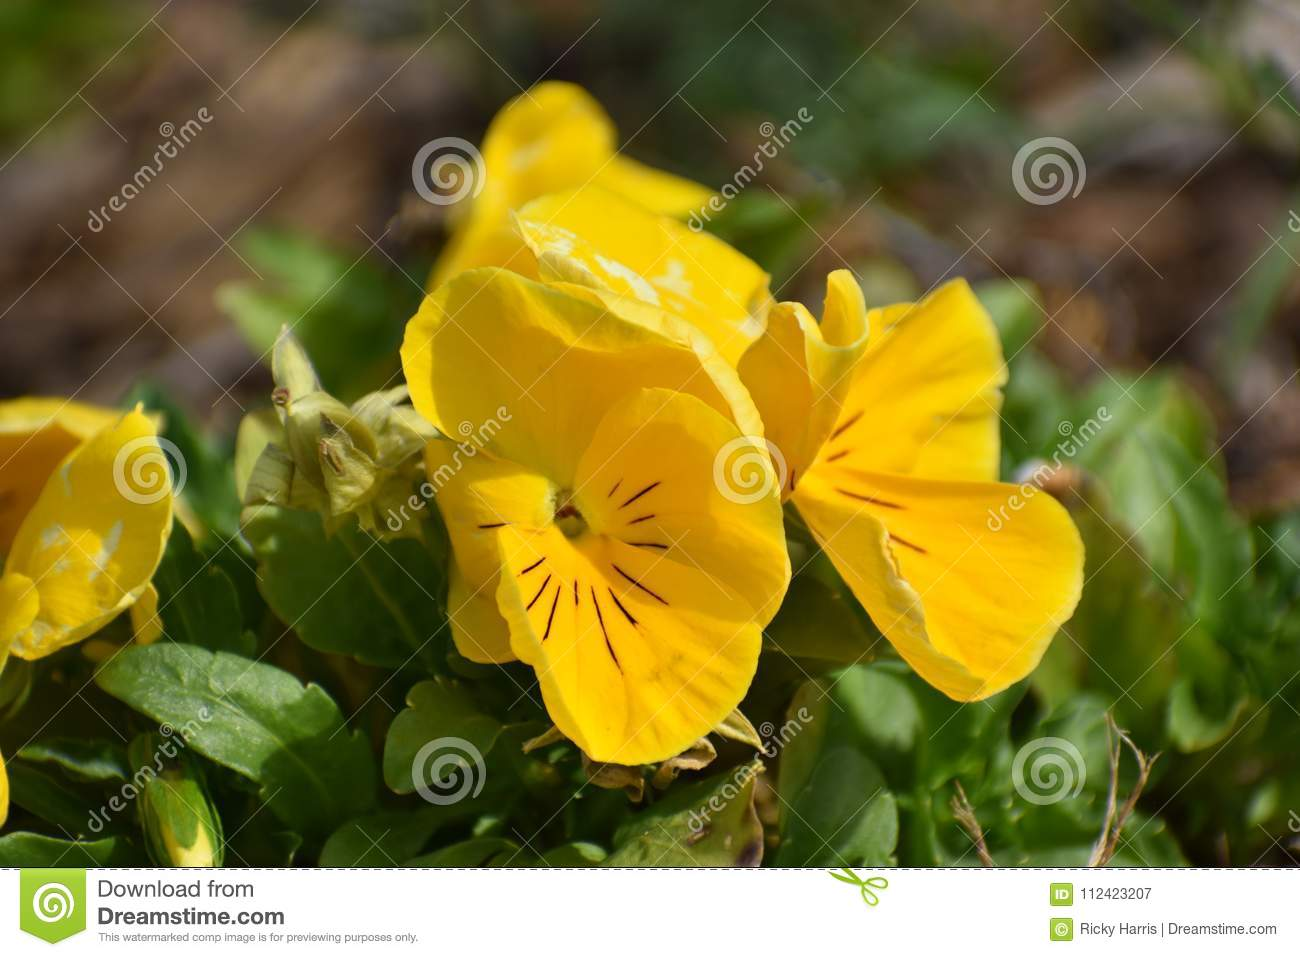 Yellow flowers in granbury texas stock image image of green coors download yellow flowers in granbury texas stock image image of green coors 112423207 mightylinksfo